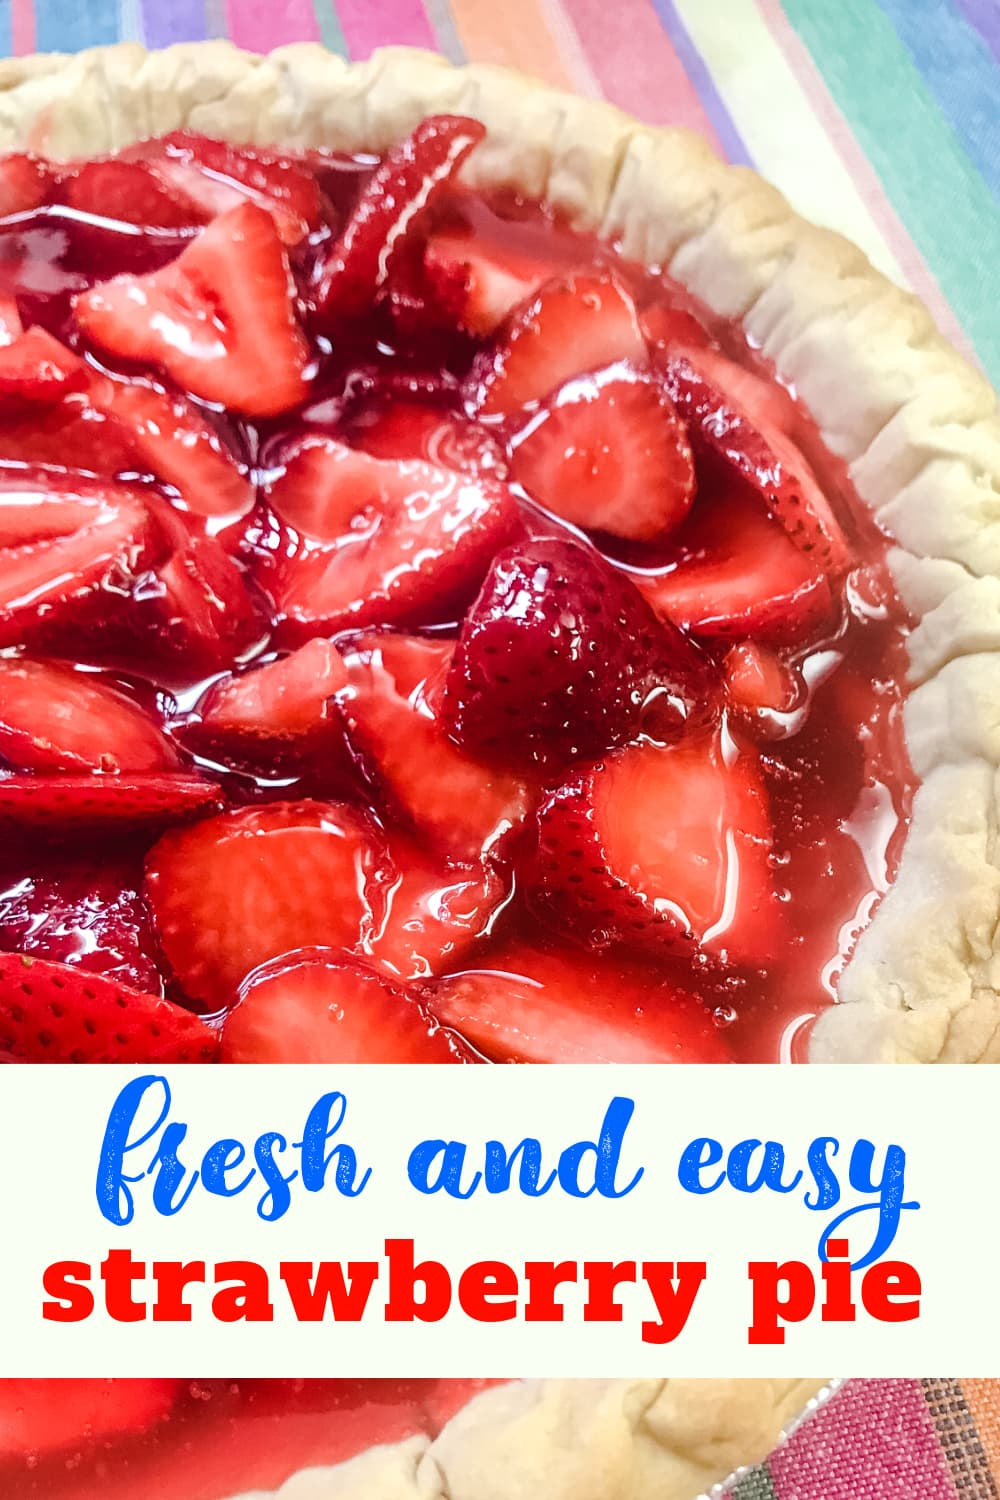 A whole freshly made chilled strawberry pie.